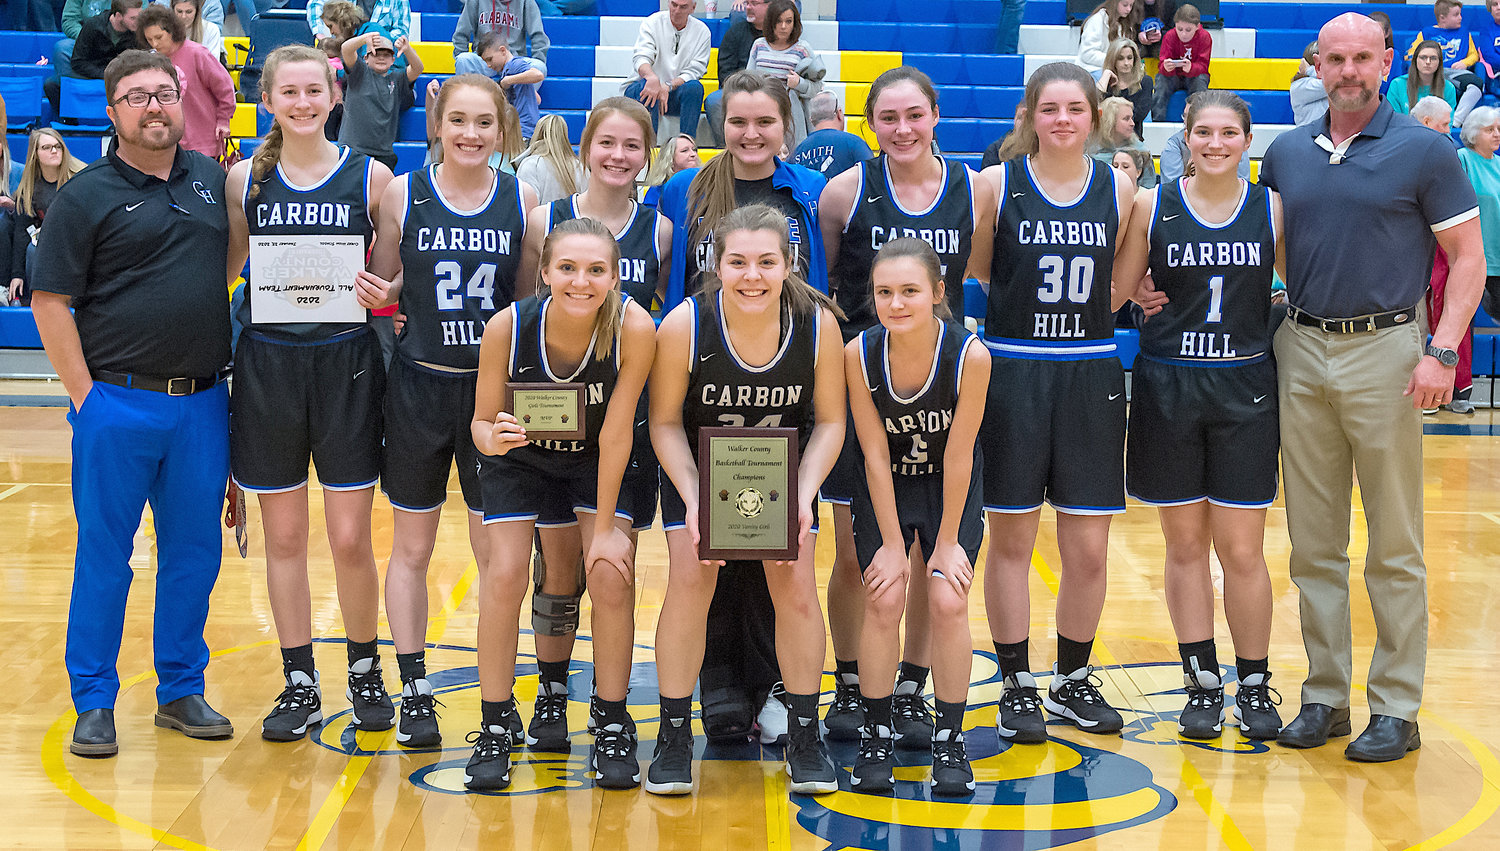 Carbon Hill won the Walker County Tournament title, beating top seed Curry 47-44 on Saturday.